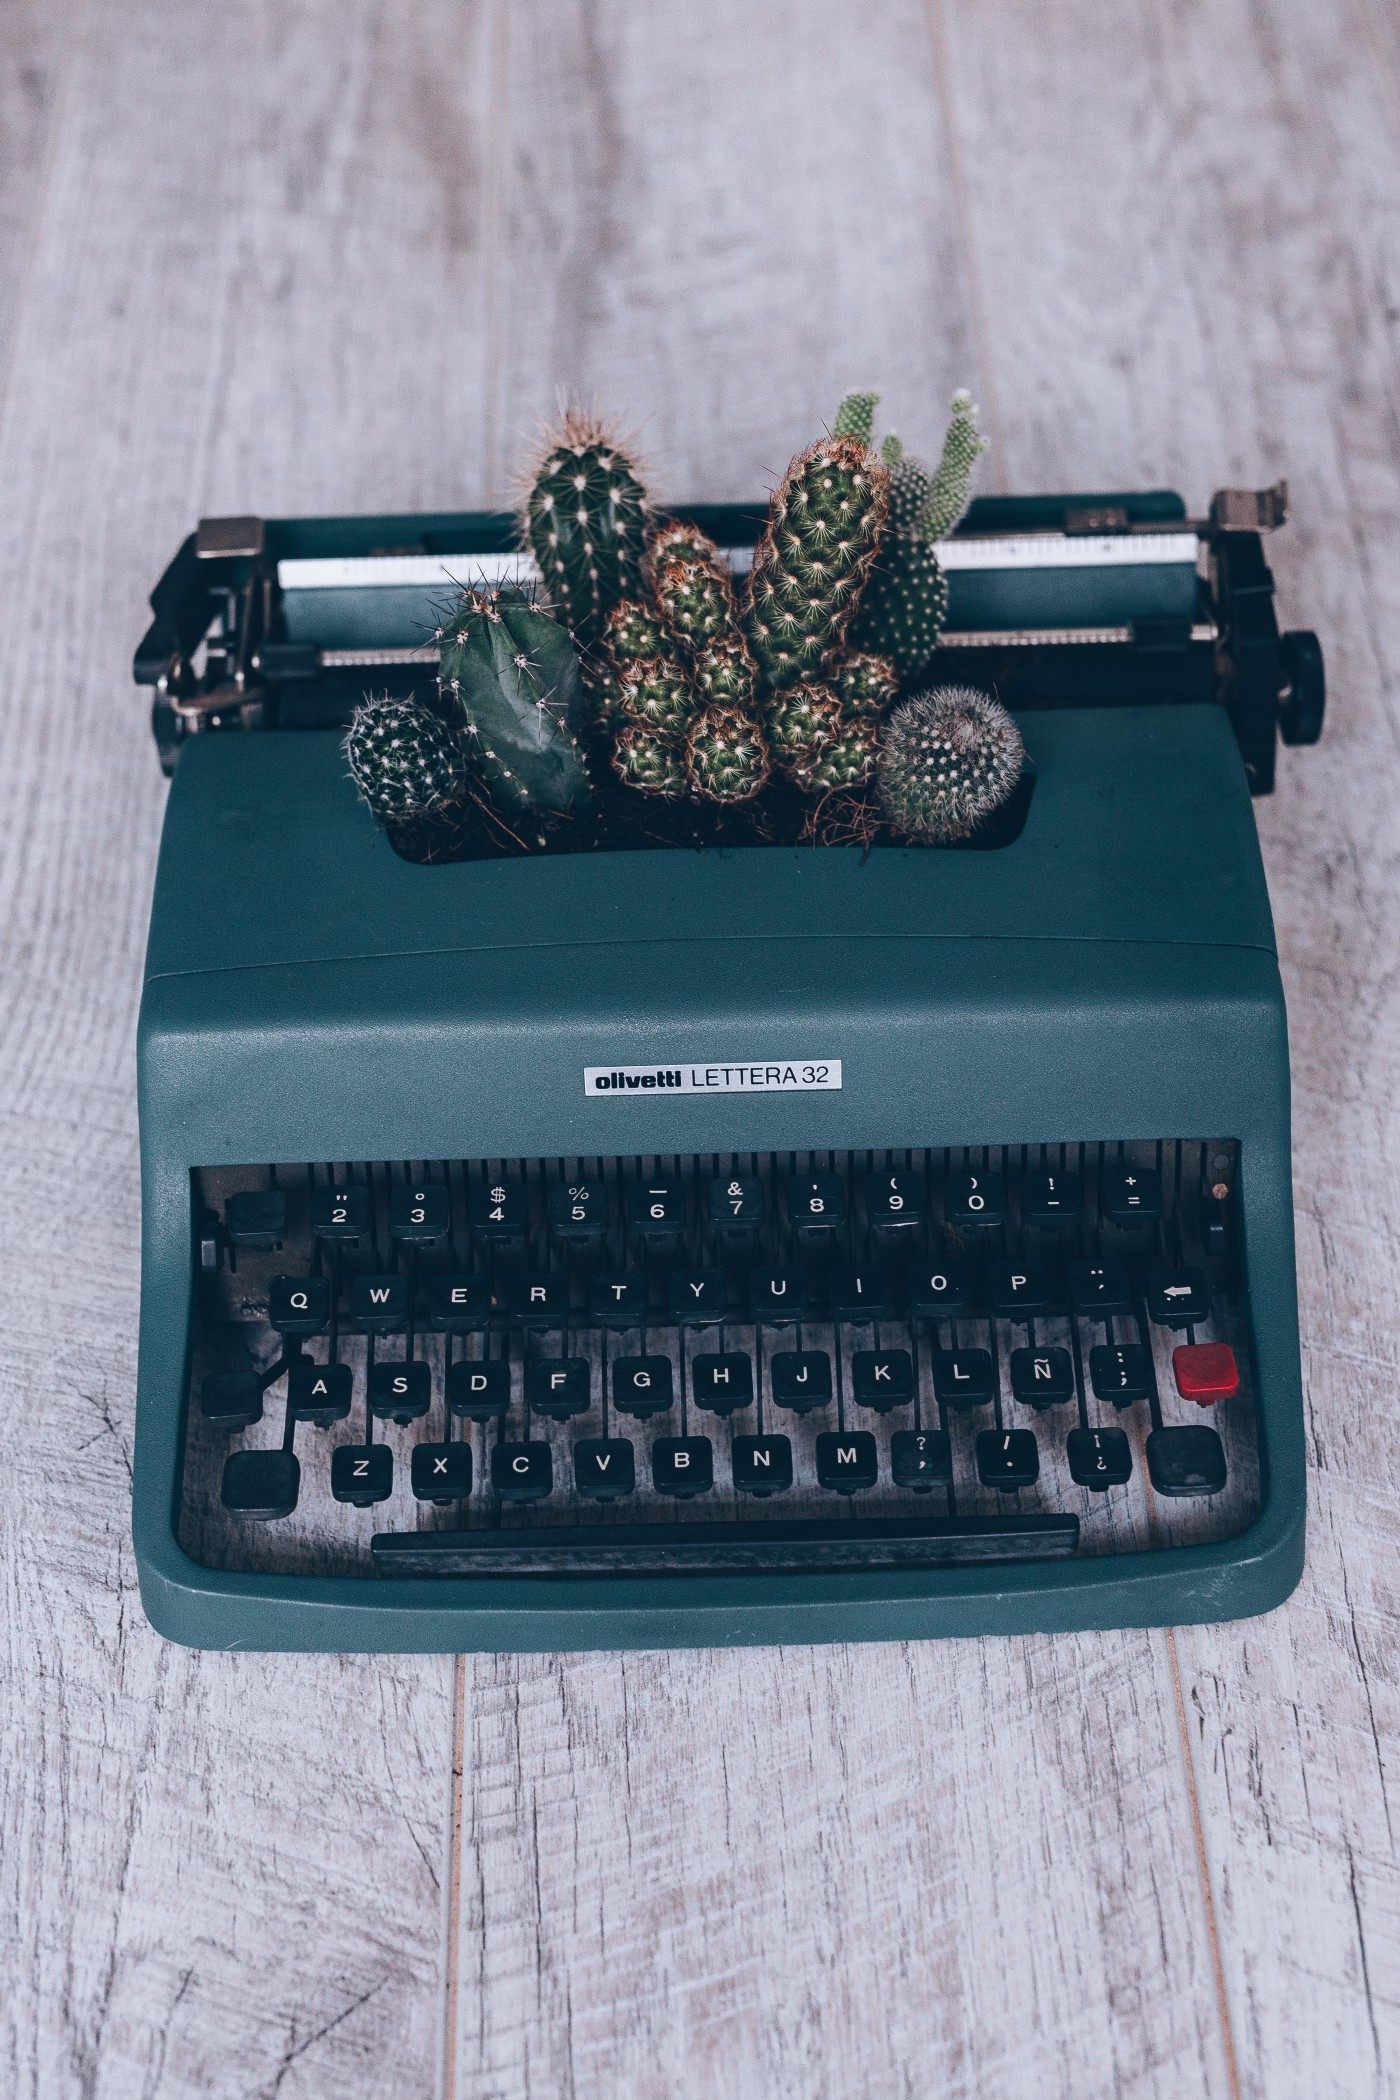 Manual typewriter with succulents planted in it.